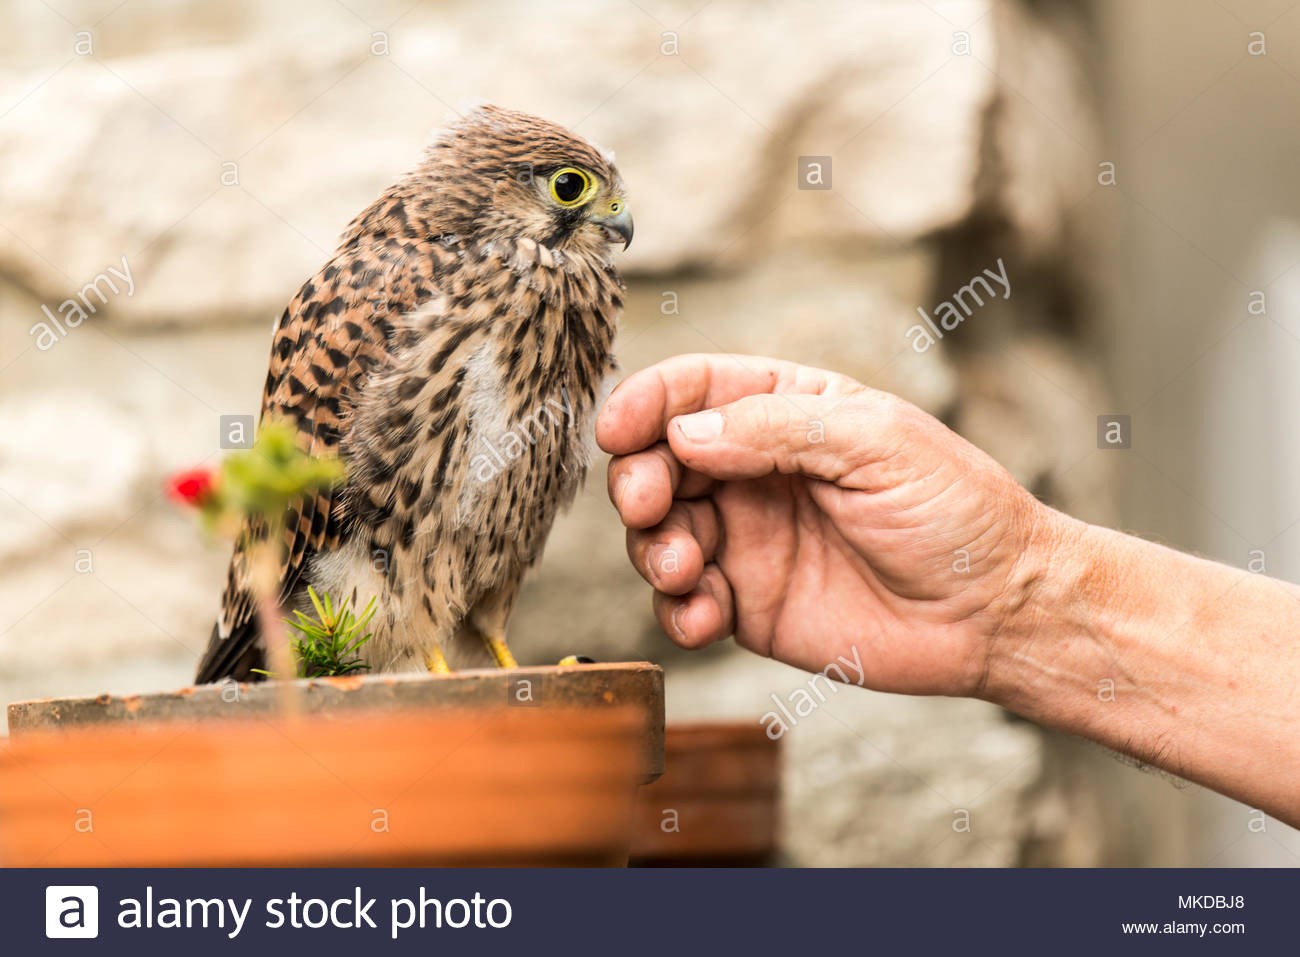 Common Kestrel (Falco tinnunculus) on a flowerpot approached by a man, Rougemont, Burgundy, France - Stock Image